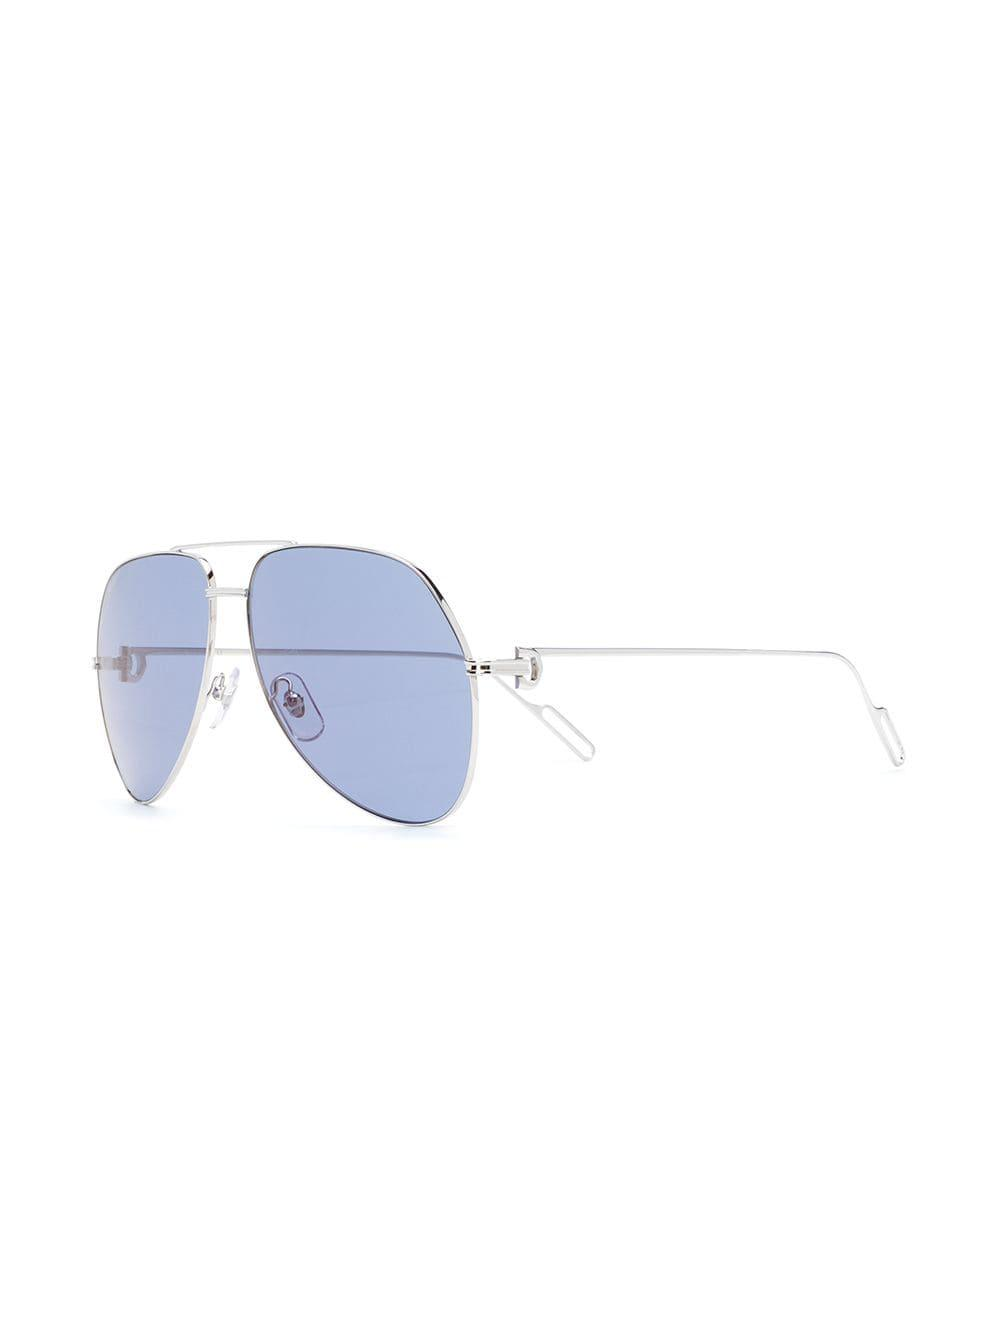 04349adc93 Lyst - Cartier Aviator Sunglasses in Metallic for Men